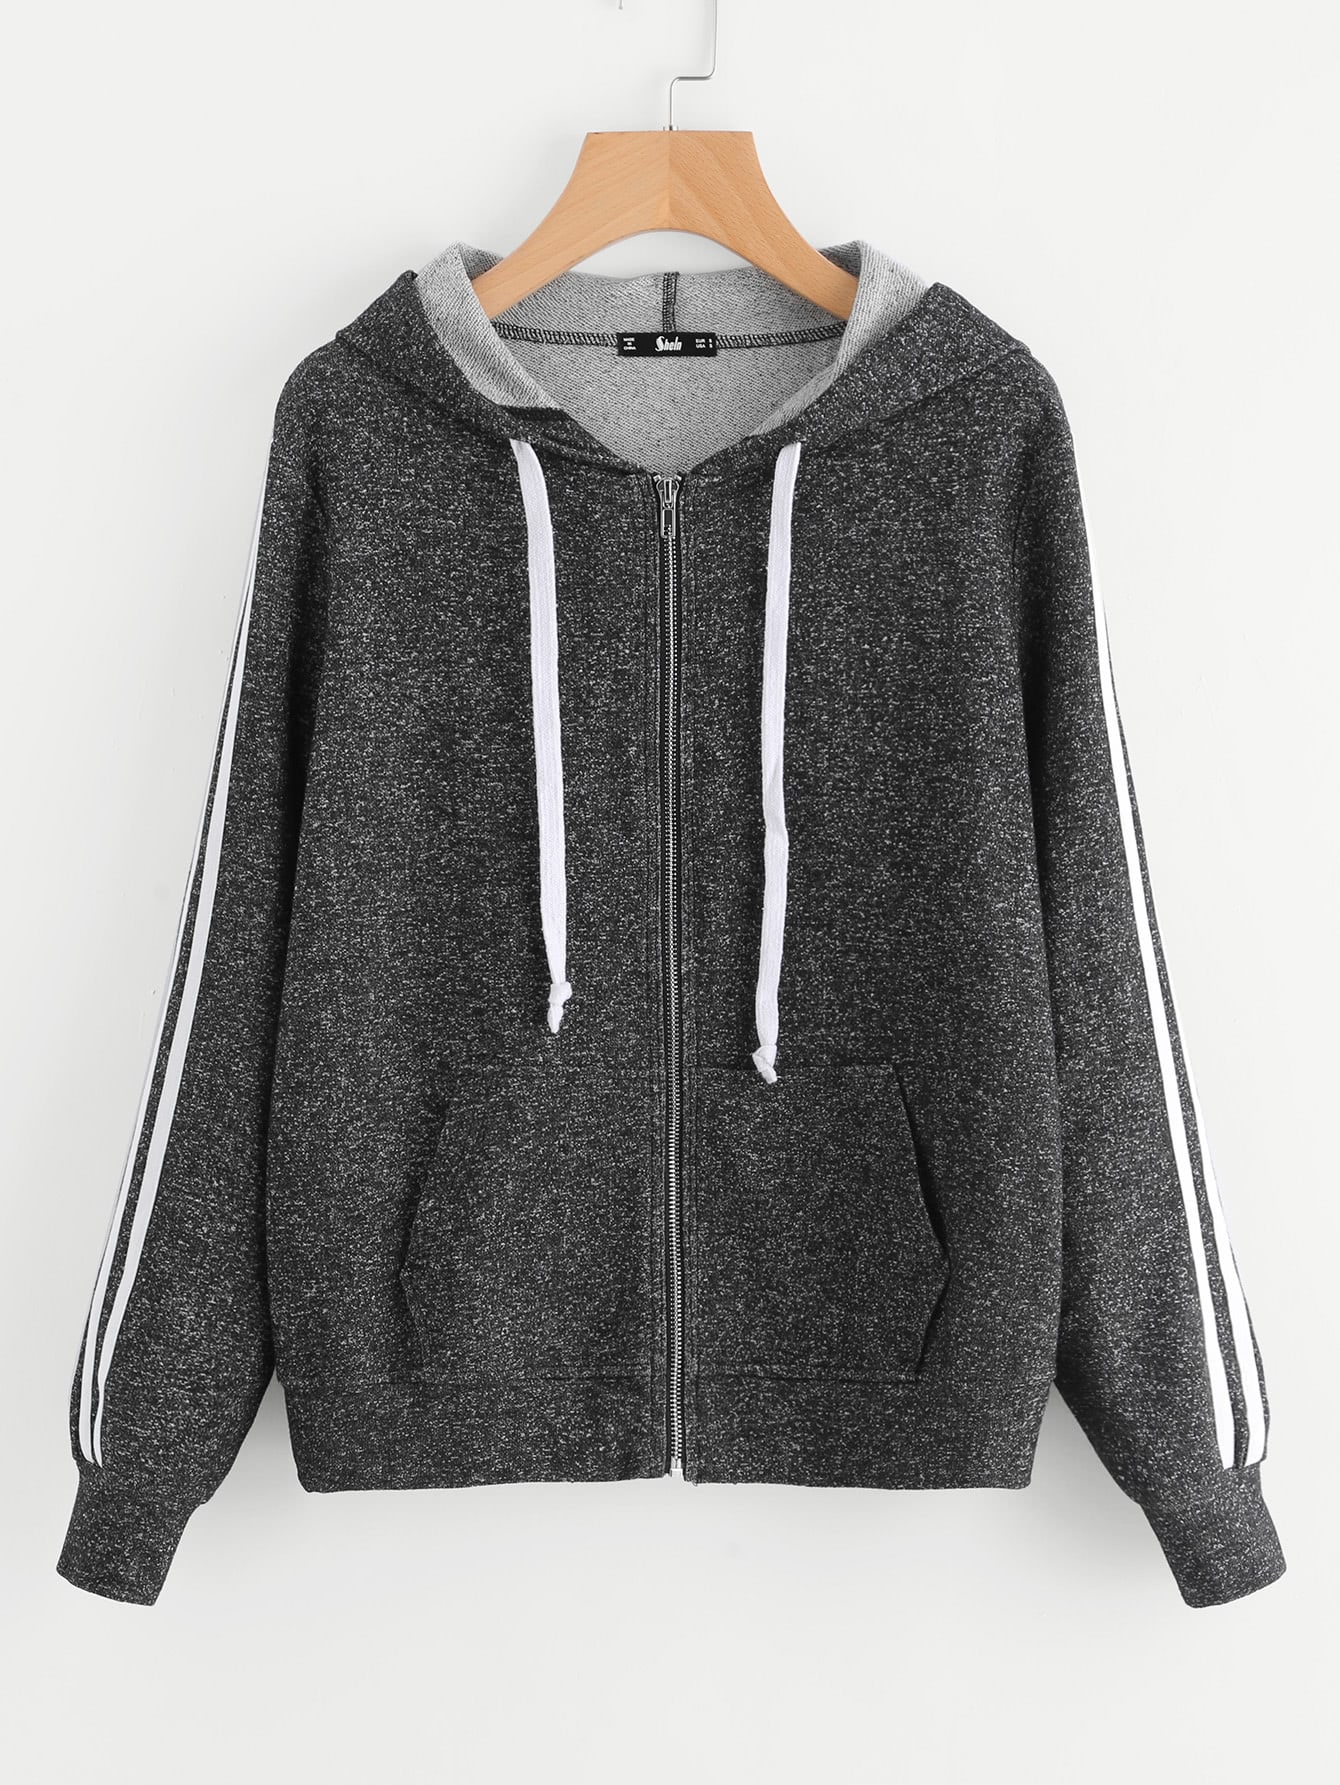 Striped Sleeve Marled Knit Zip Up Hoodie